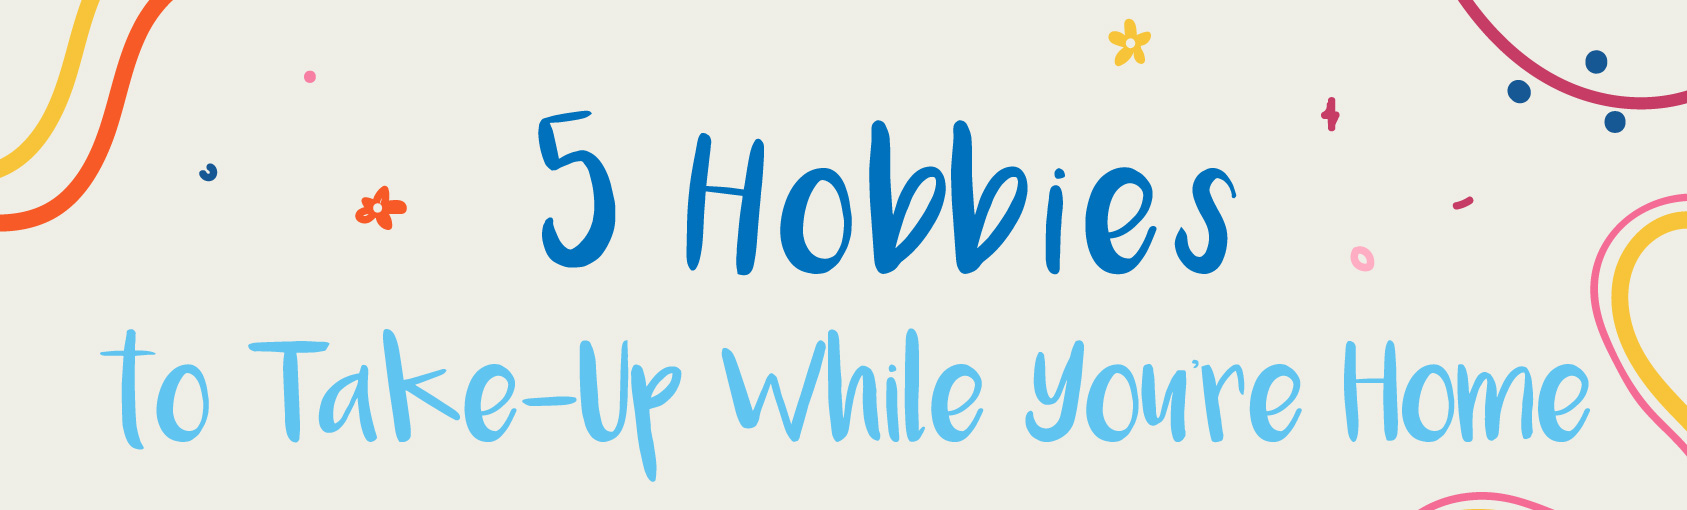 5 Hobbies to Take-Up While You're Home banner